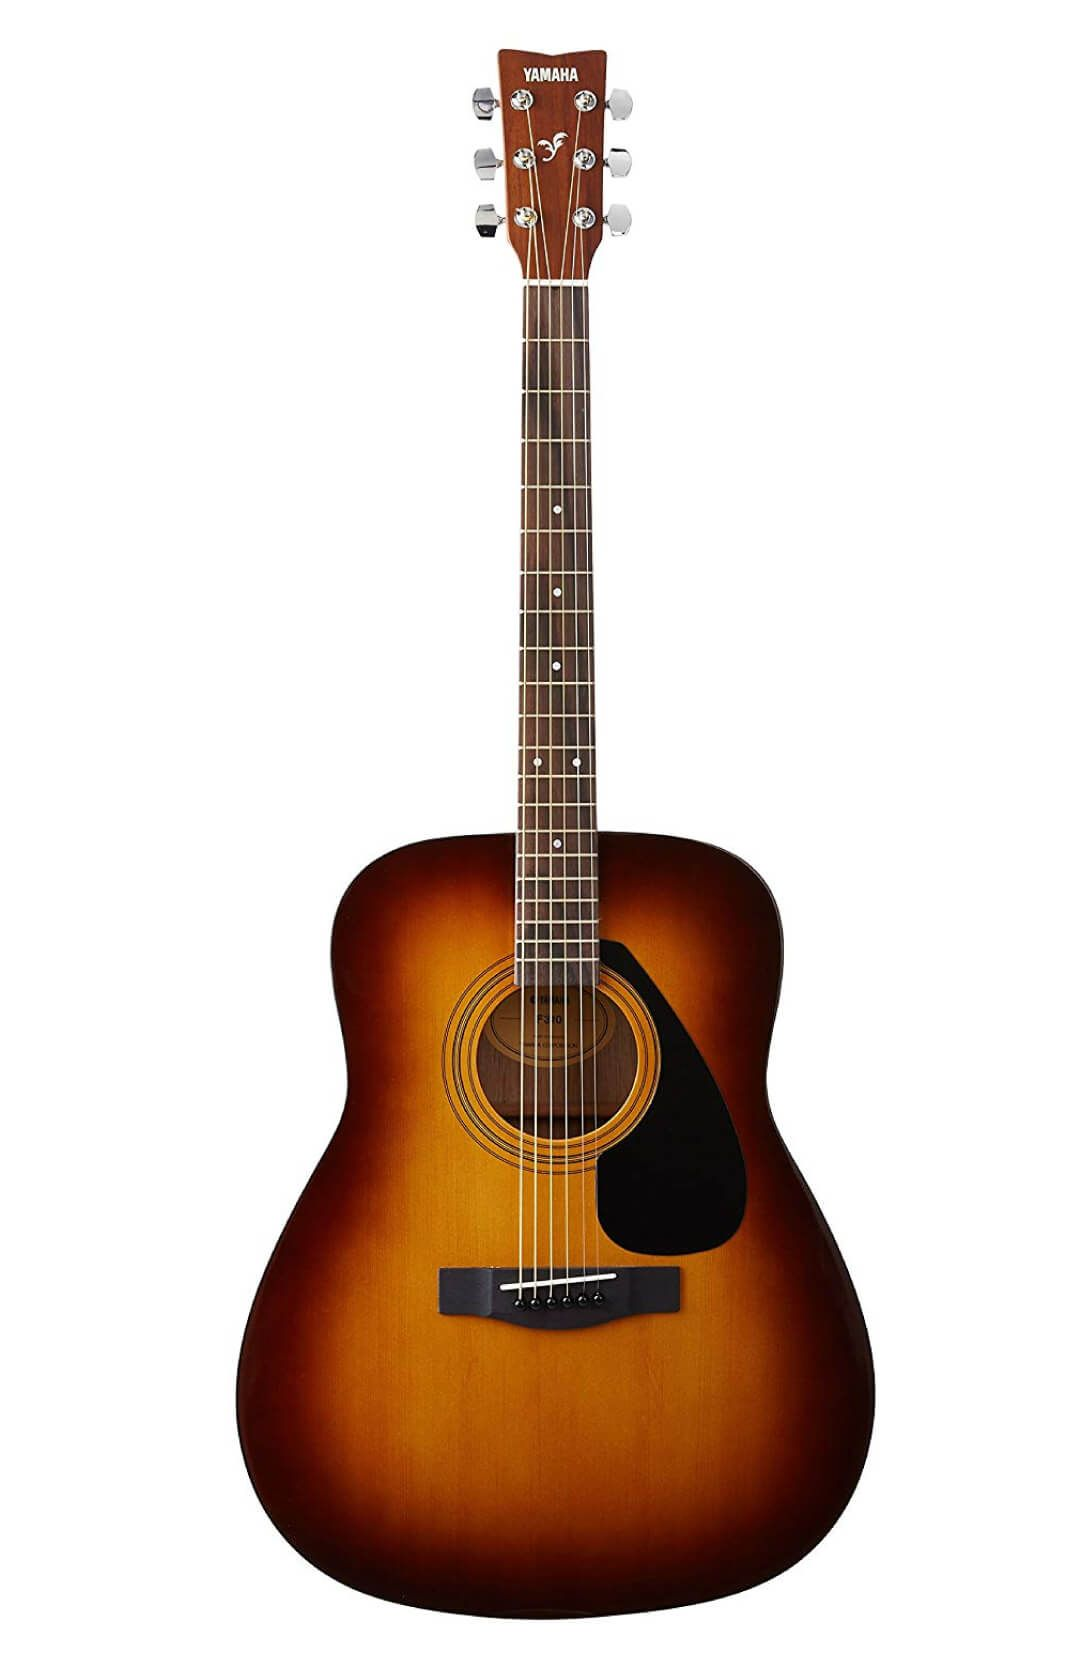 Buy Yamaha F310 Acoustic Guitar Tobacco Brown In India Devmusical Yamaha Guitar Yamaha F310 Yamaha Guitars Acoustic